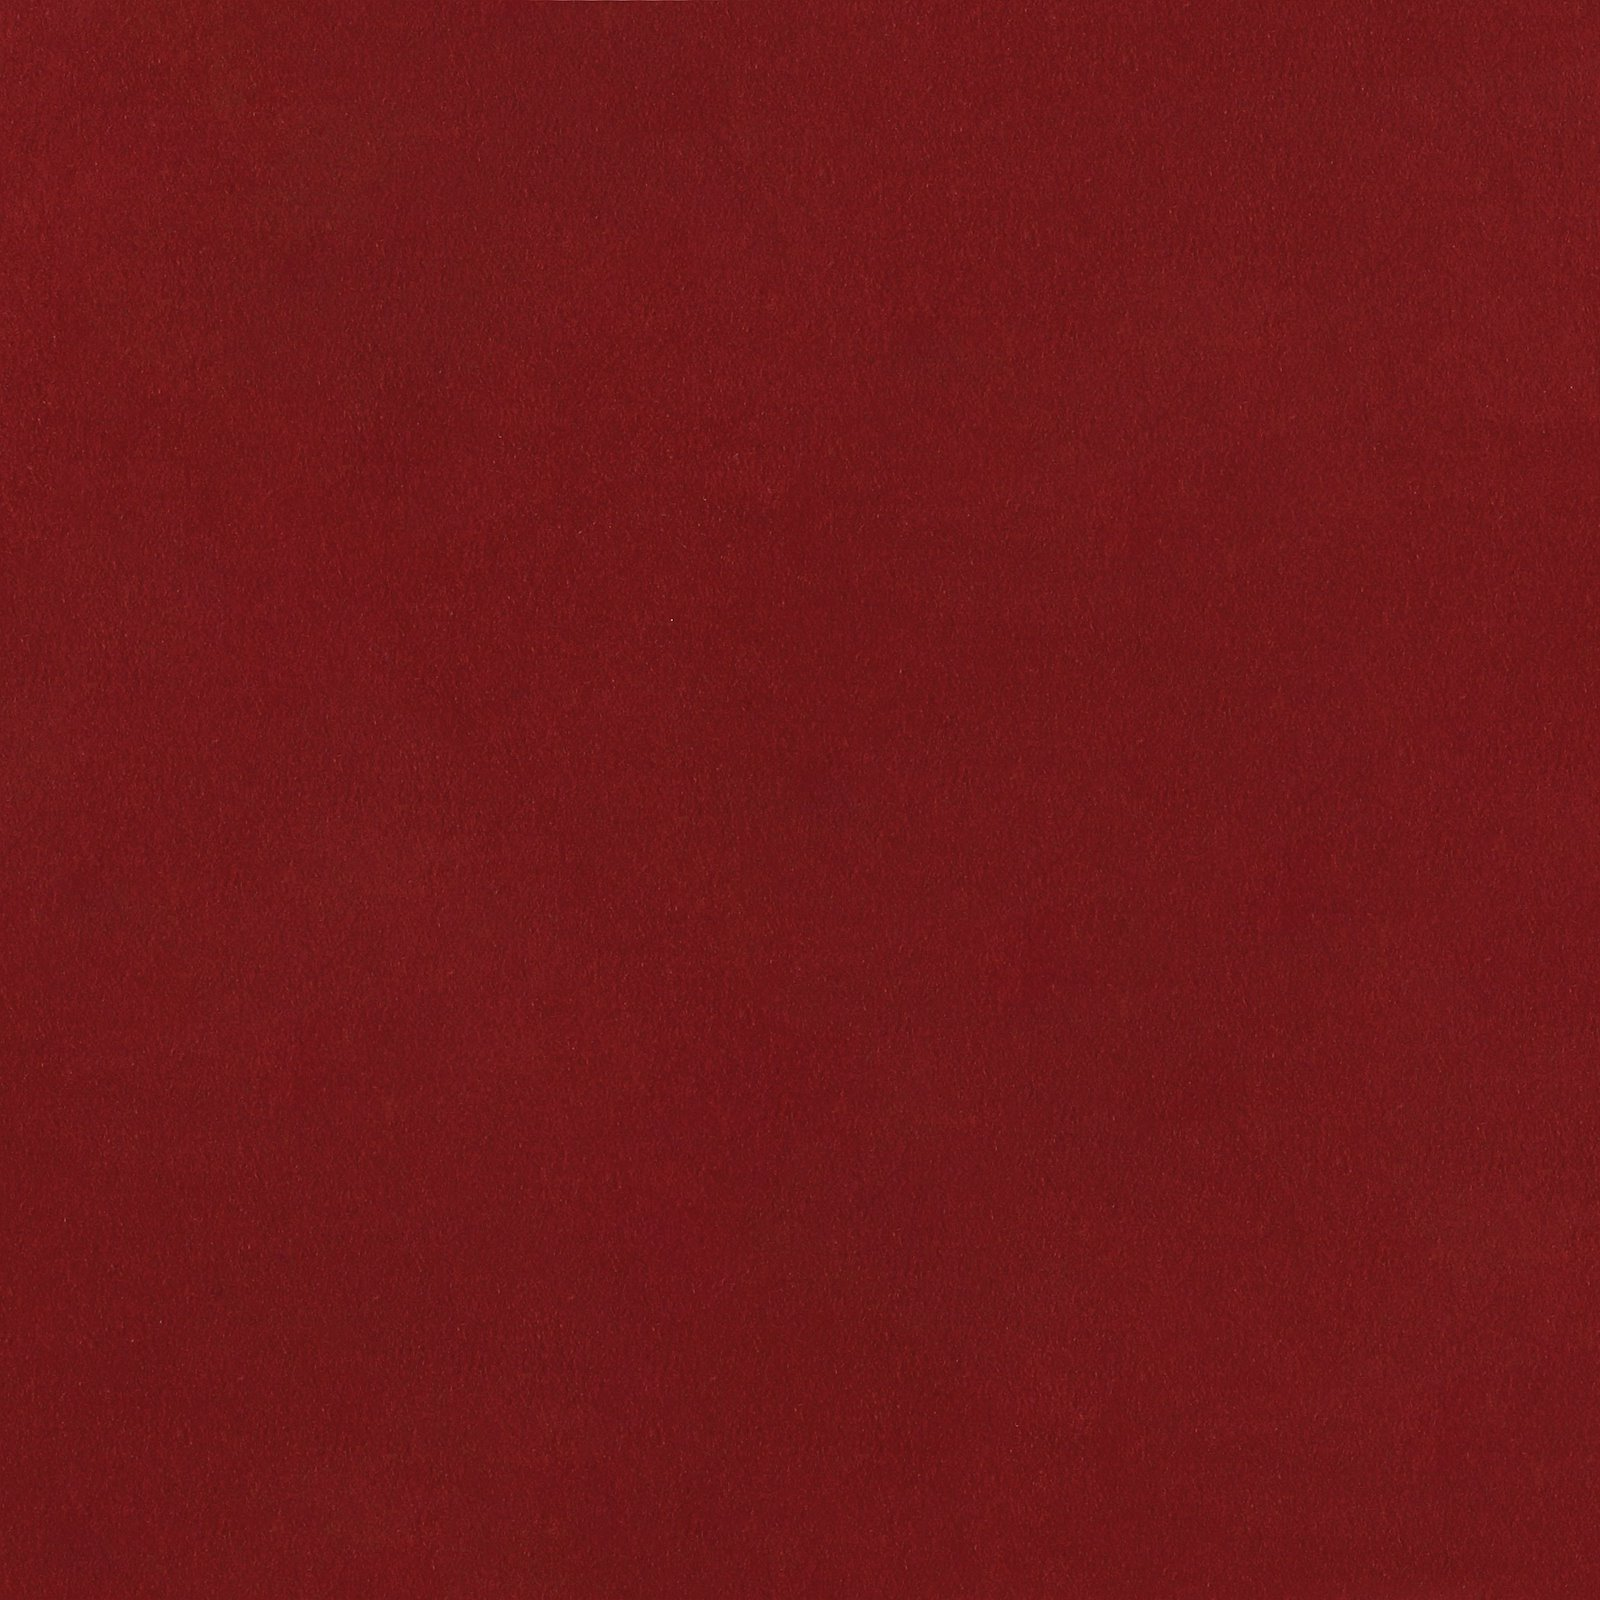 Wool red heavy 330014_pack_solid